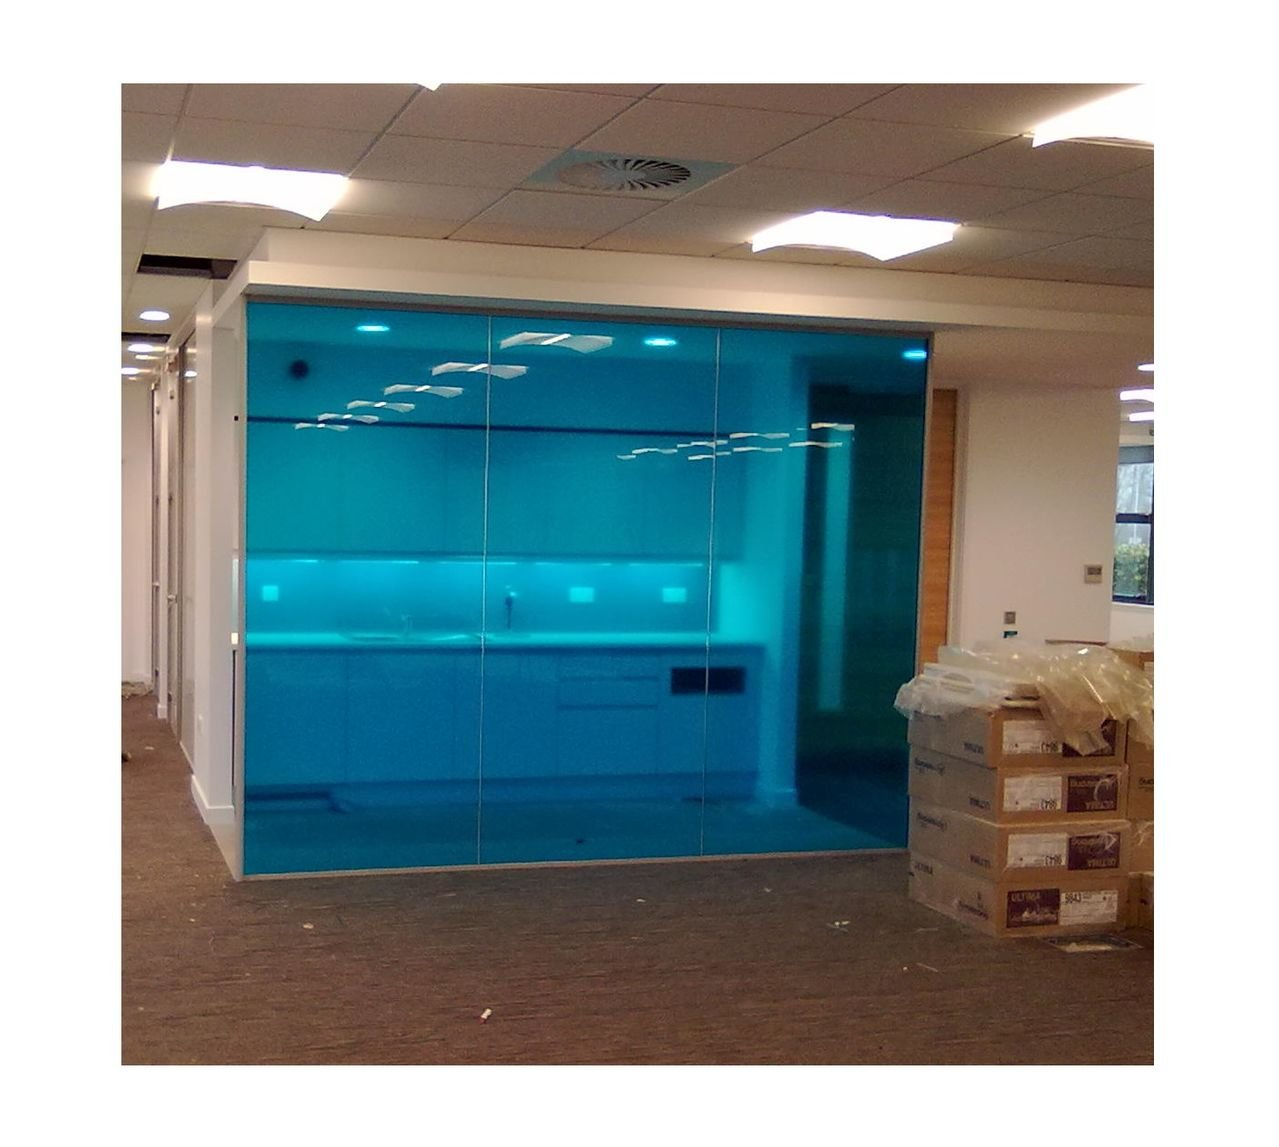 Active Film Transparent Colourful Window Film Self Adhesive- Optically Coloured Clear Blue Tint 1m x 76cm (30